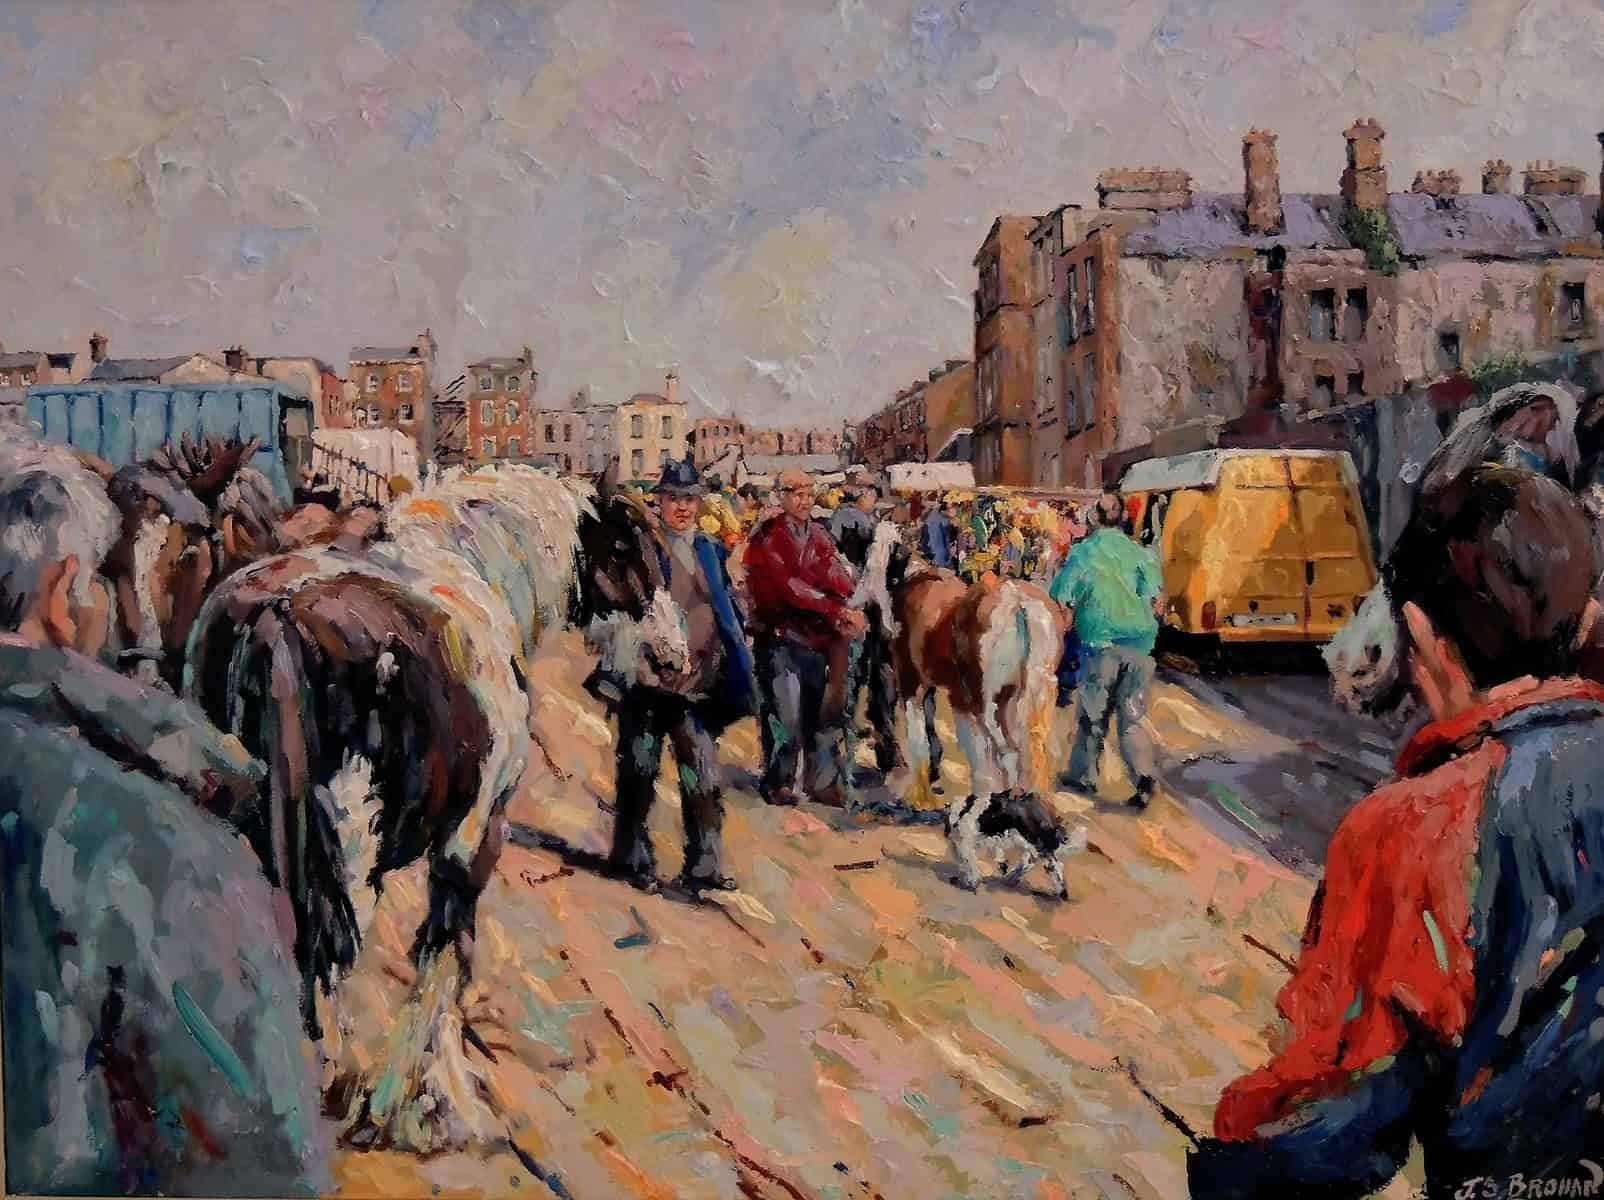 james-brohan-smithfield-horse-market-30-x-40-inches-e19500